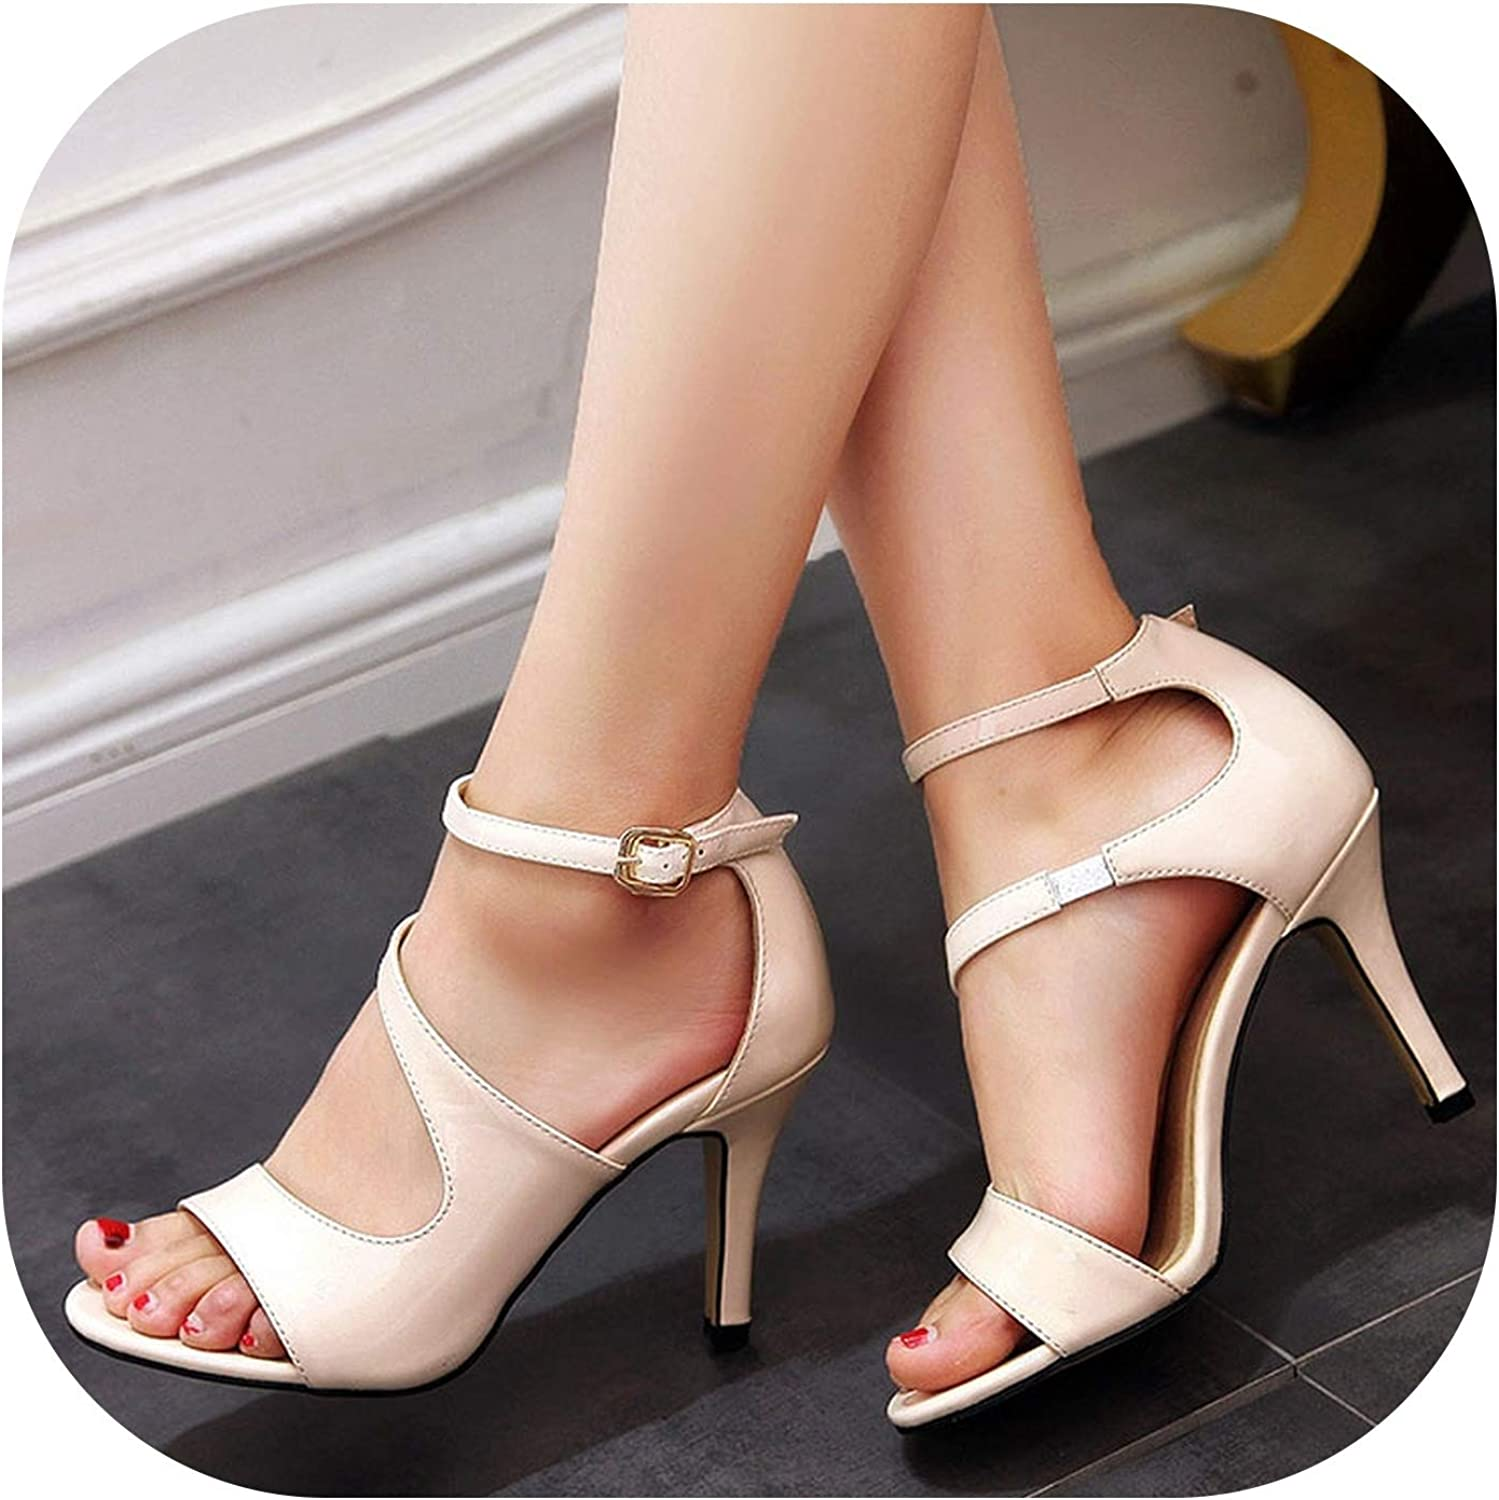 Sexy Sandals Style Patent Leather Thin High Heel Women Party shoes